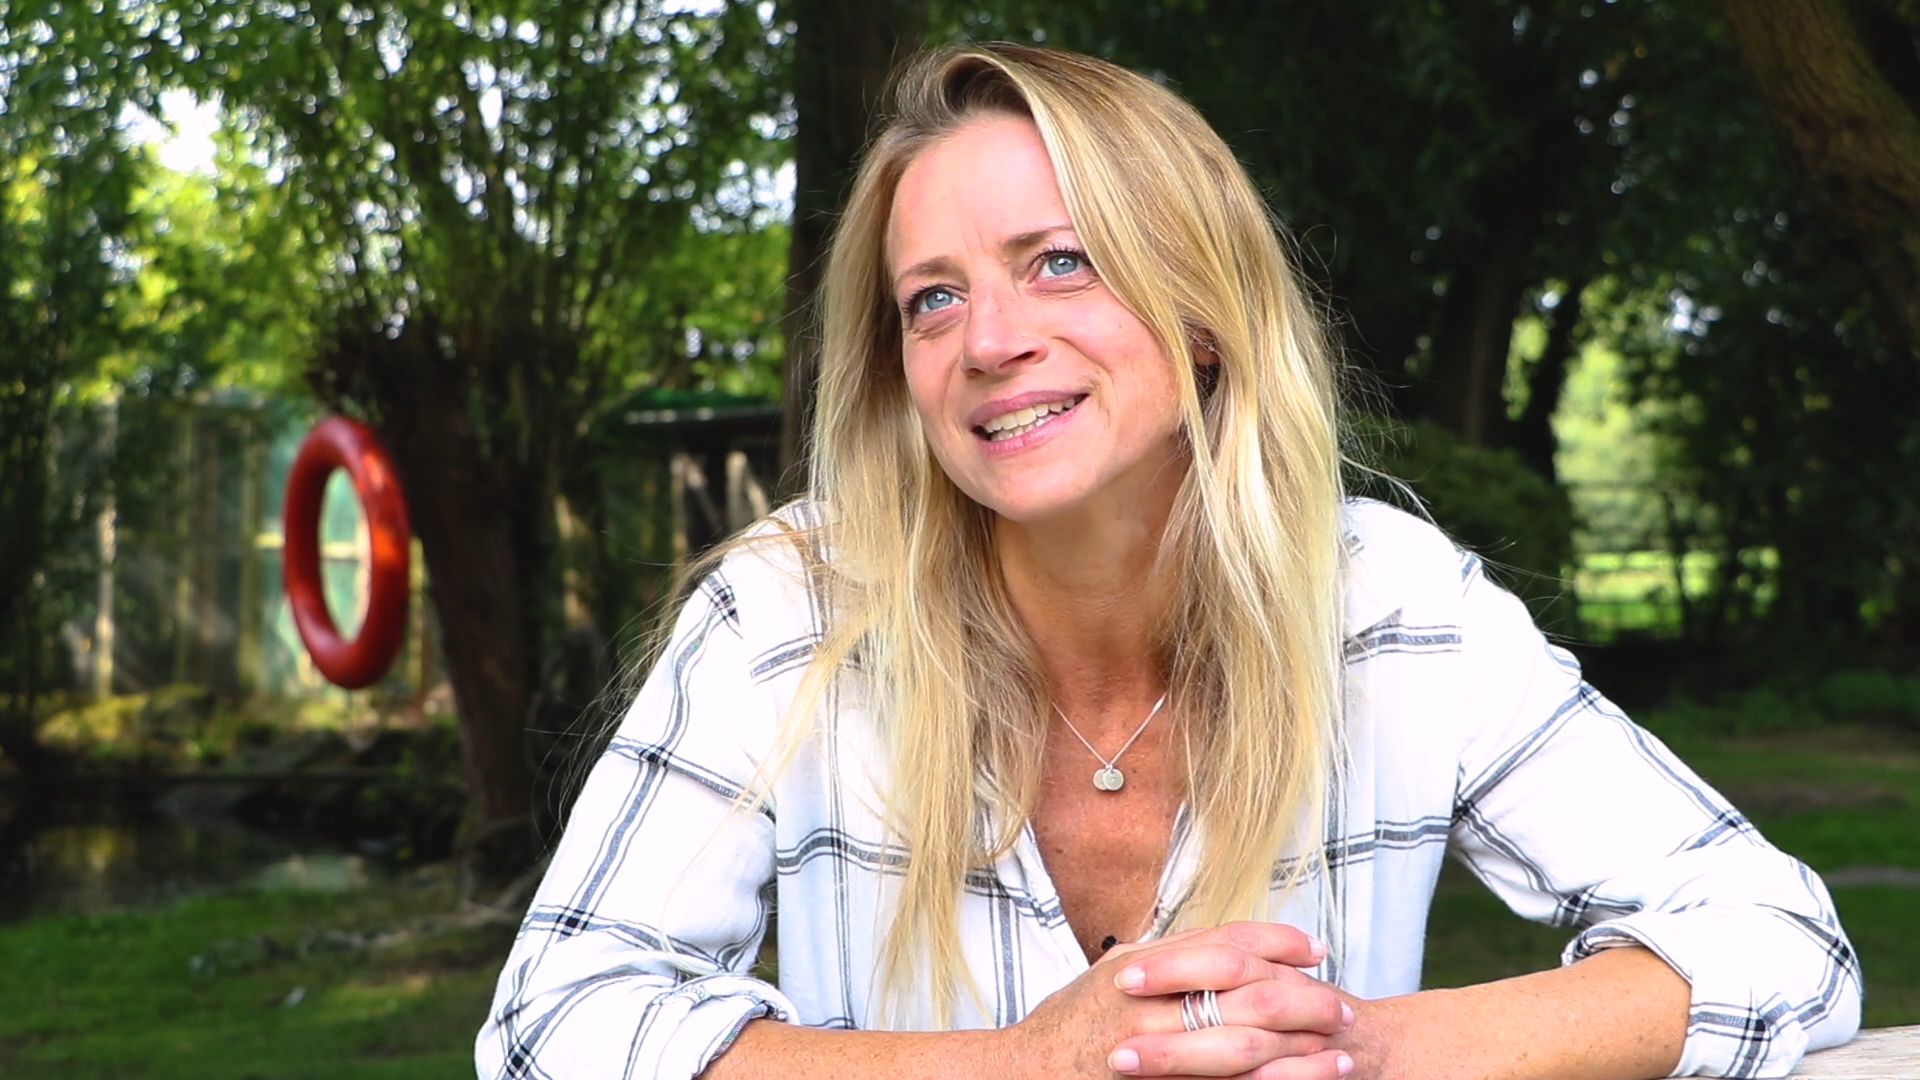 Lou Cowell, daughter of Simon Cowell CEO and Founder of the Wildlife Aid Foundation in Leatherhead describes what it was like growing up around the wildlife foundation.